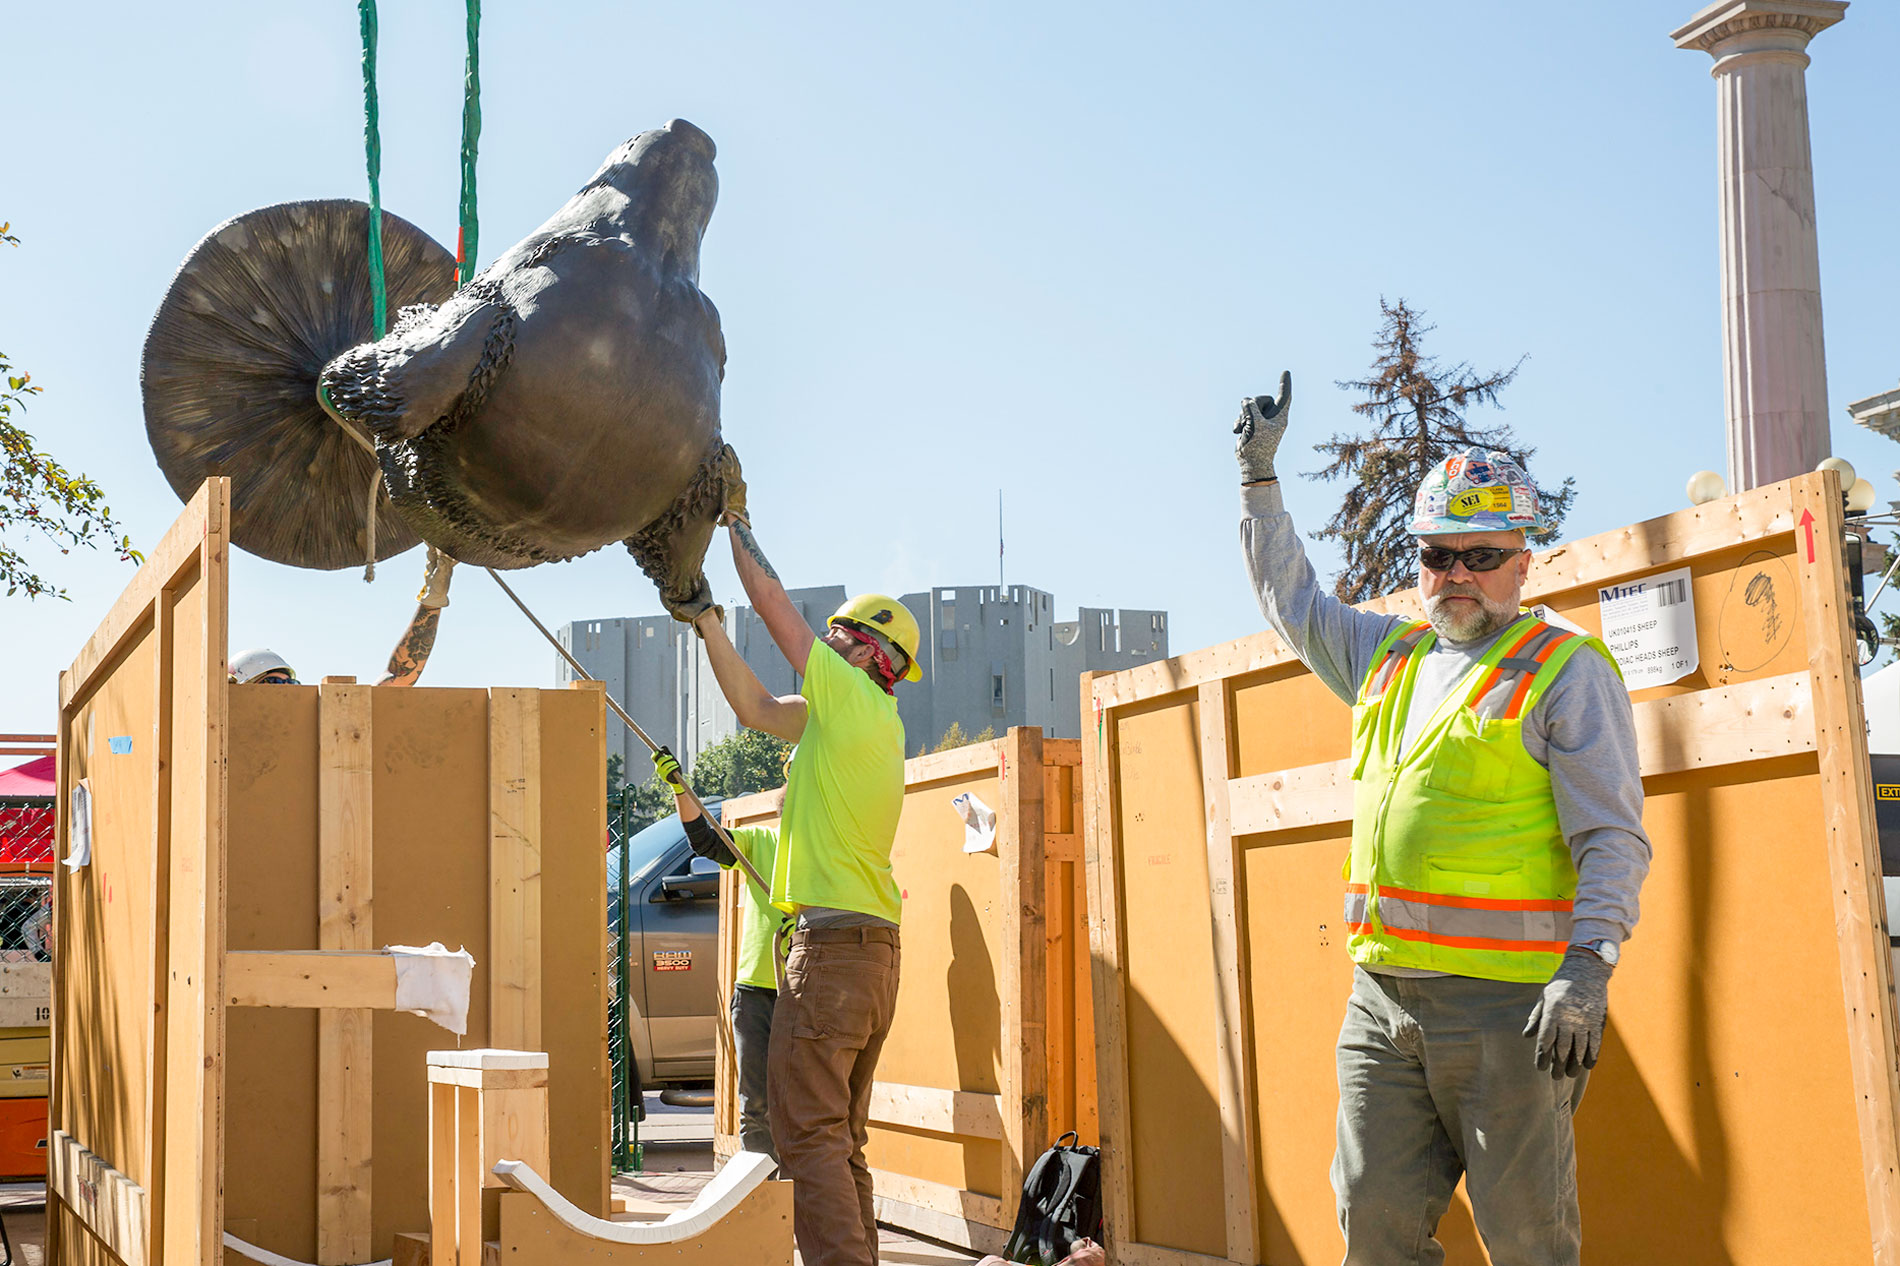 "<p>Fine art rigger Roger Machin of Chicago's Methods & Materials leads his crew during the installation of Ai Weiwei's ""Circle of Animals/Zodiac Heads"" sculptures in Denver's Civic Center Park, Oct. 4, 2017.</p>"